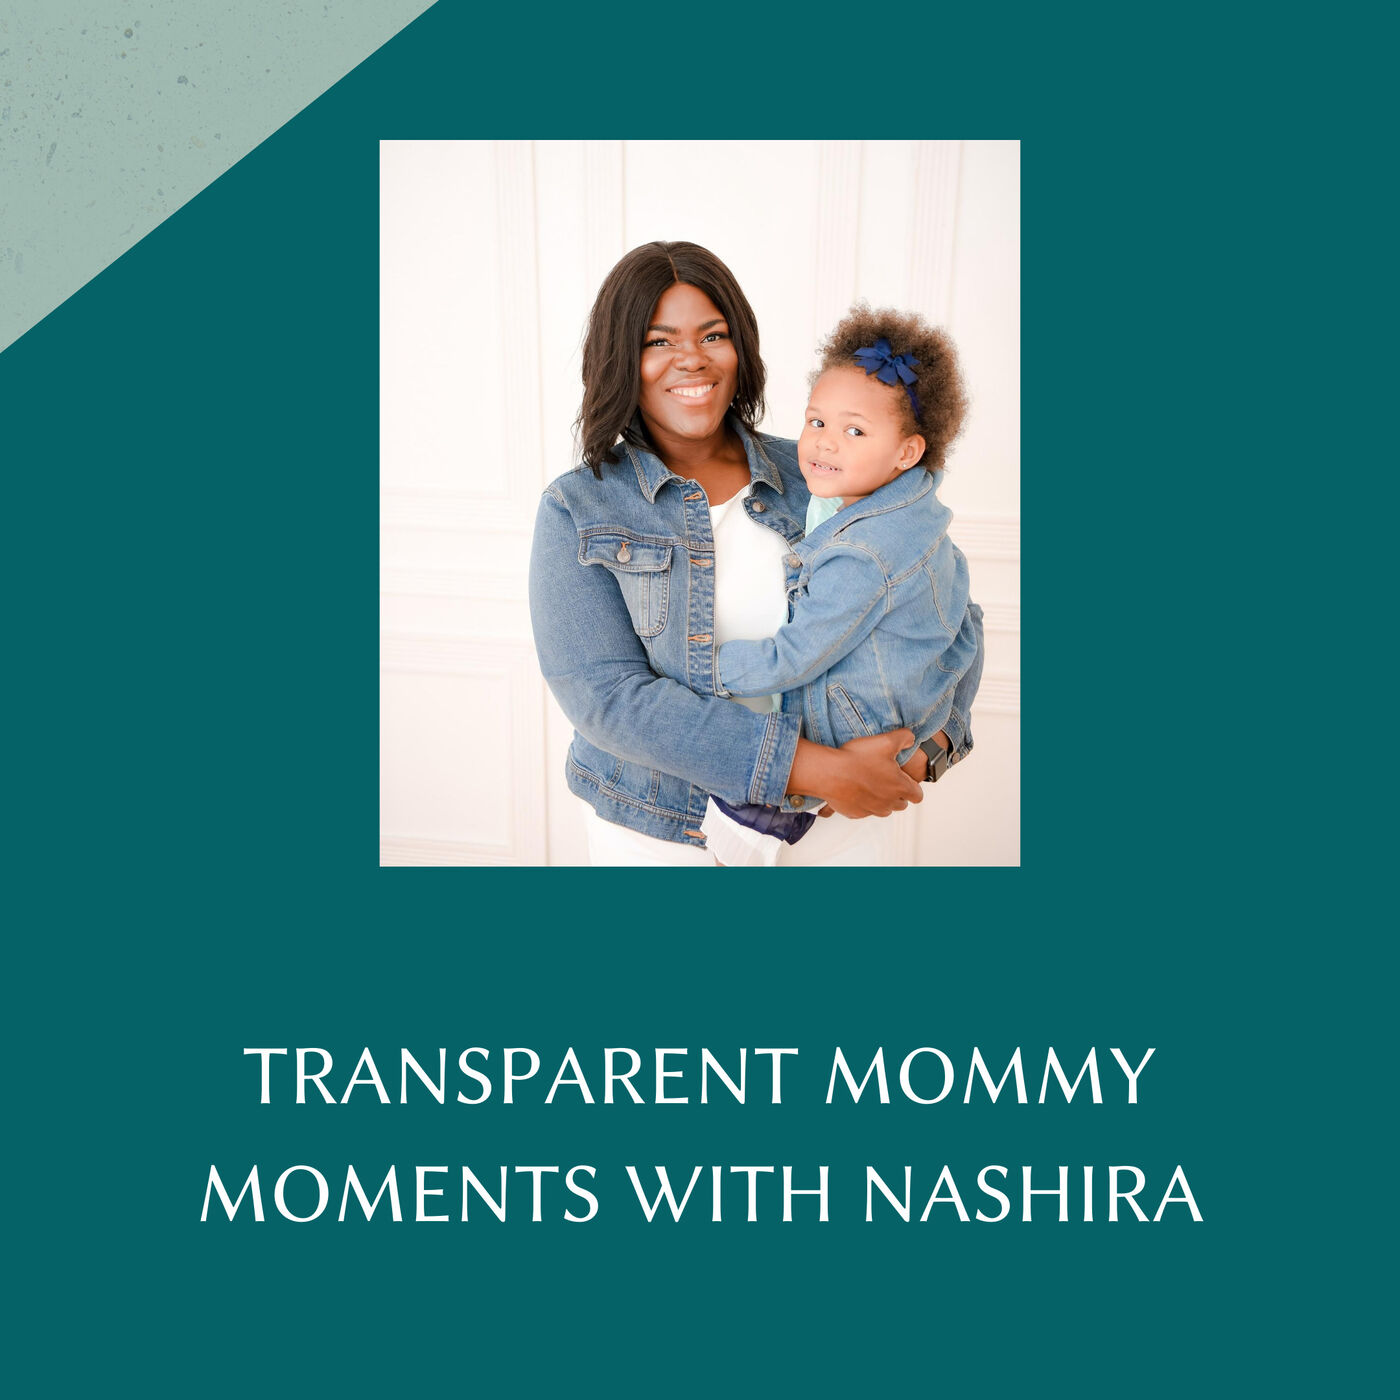 Transparent Mommy Moments featuring Nashira